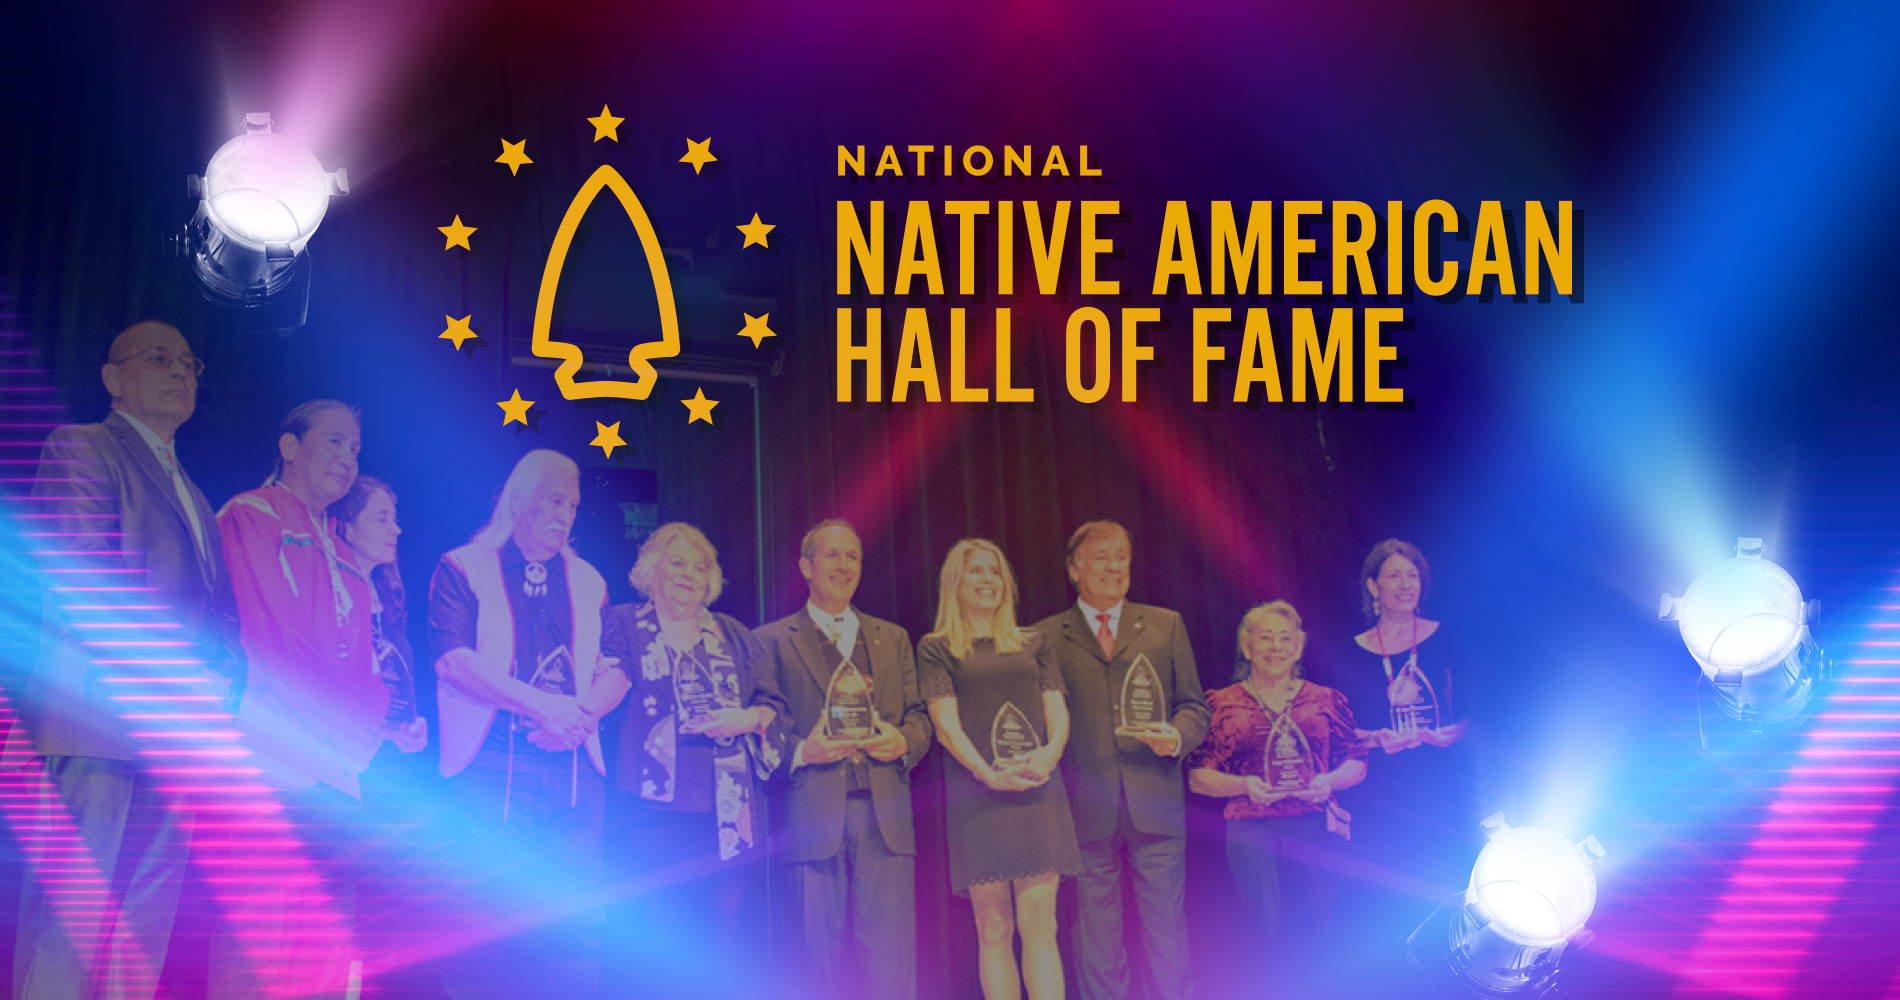 Native-American-Hall-of-Fame---Website-Image-Working1